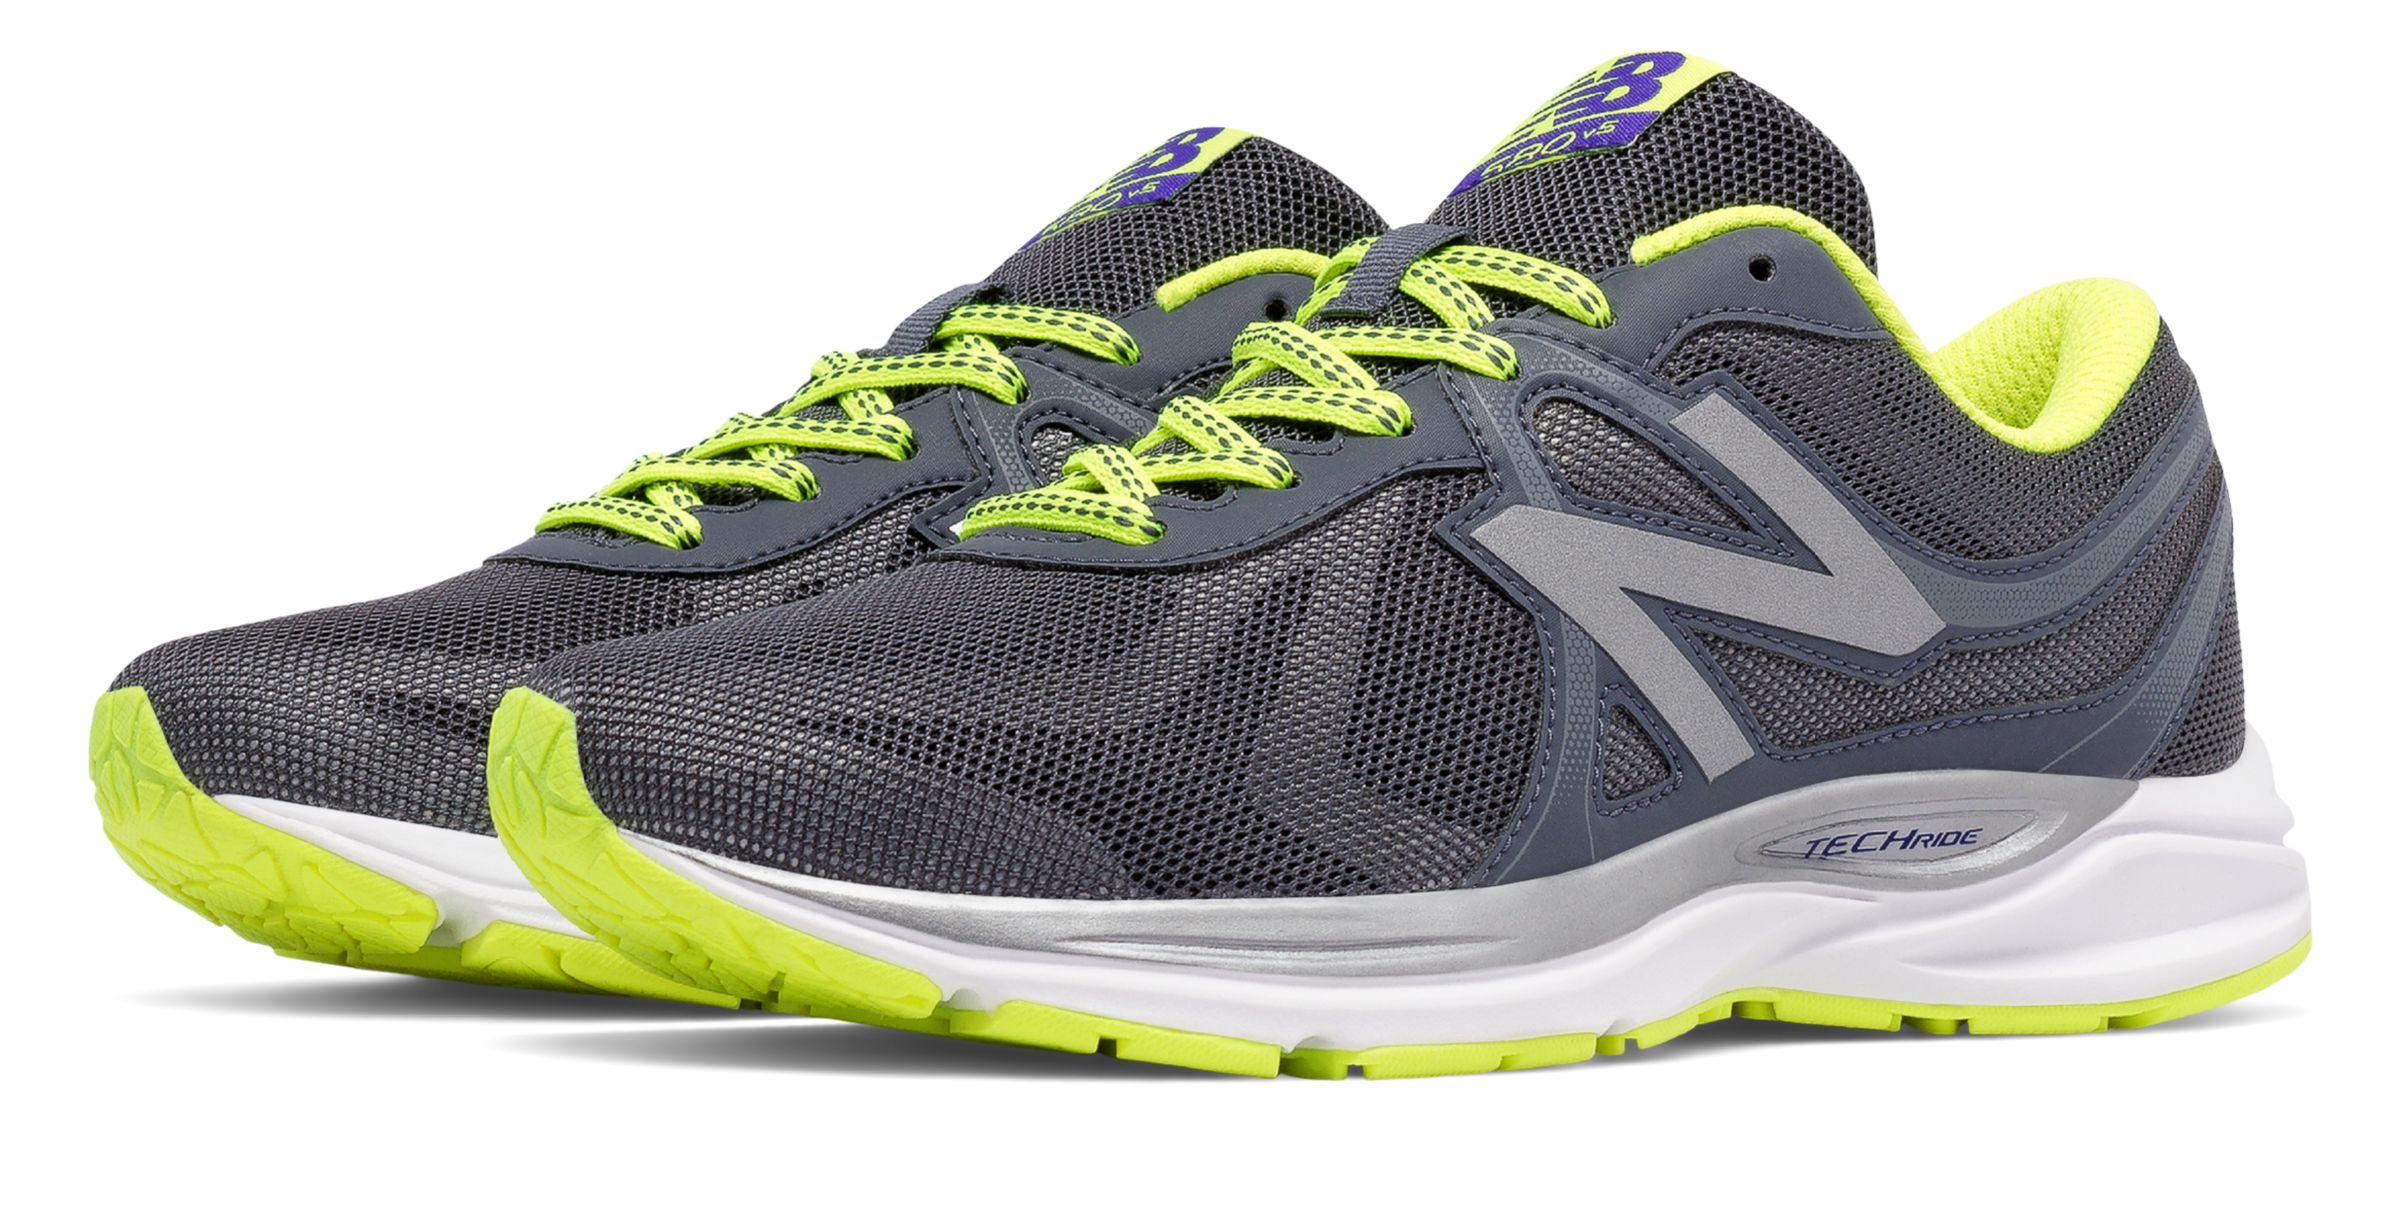 New Balance W580-V5 on Sale - Discounts Up to 18% Off on W580LG5. Joe\u0027s New  Balance Outlet featuring discount shoes ...